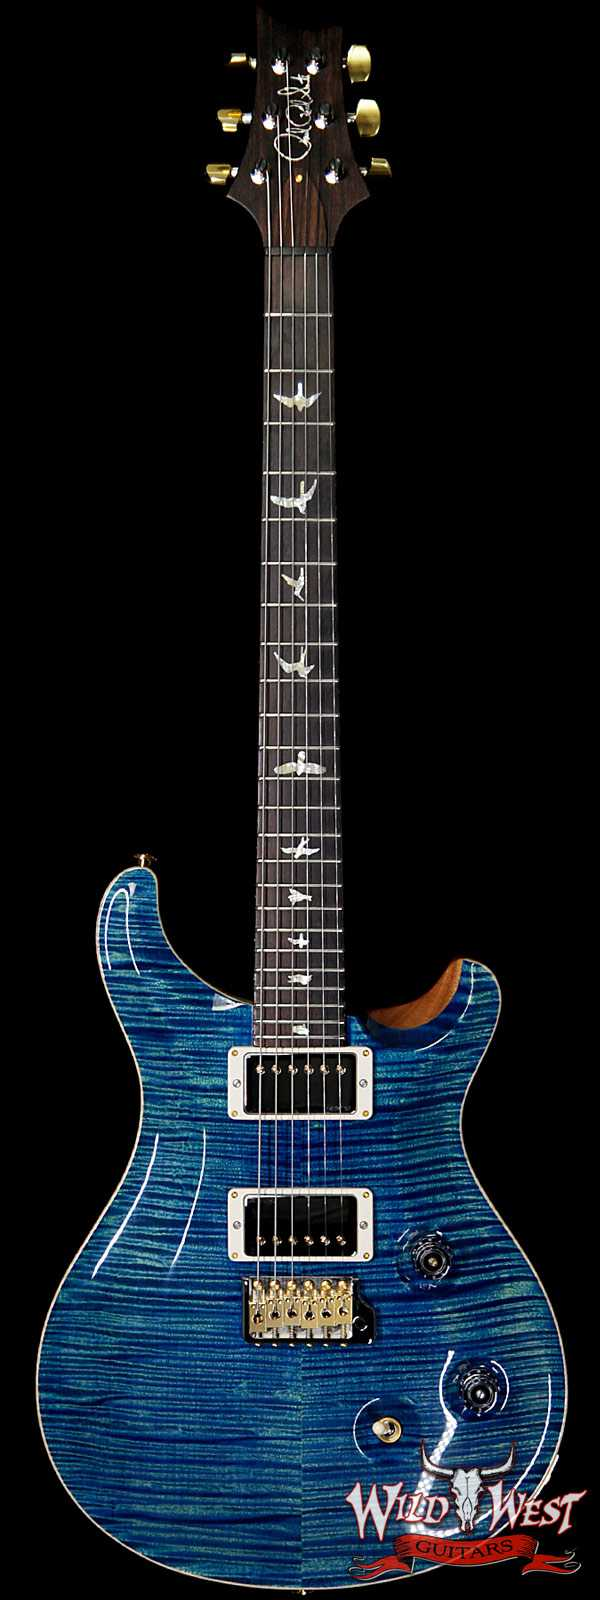 PRS Wild West Guitars 20th Anniversary Limited Run # 32 of 40 Wood Library Artist Package Custom 24 Flame Maple Neck River Blue